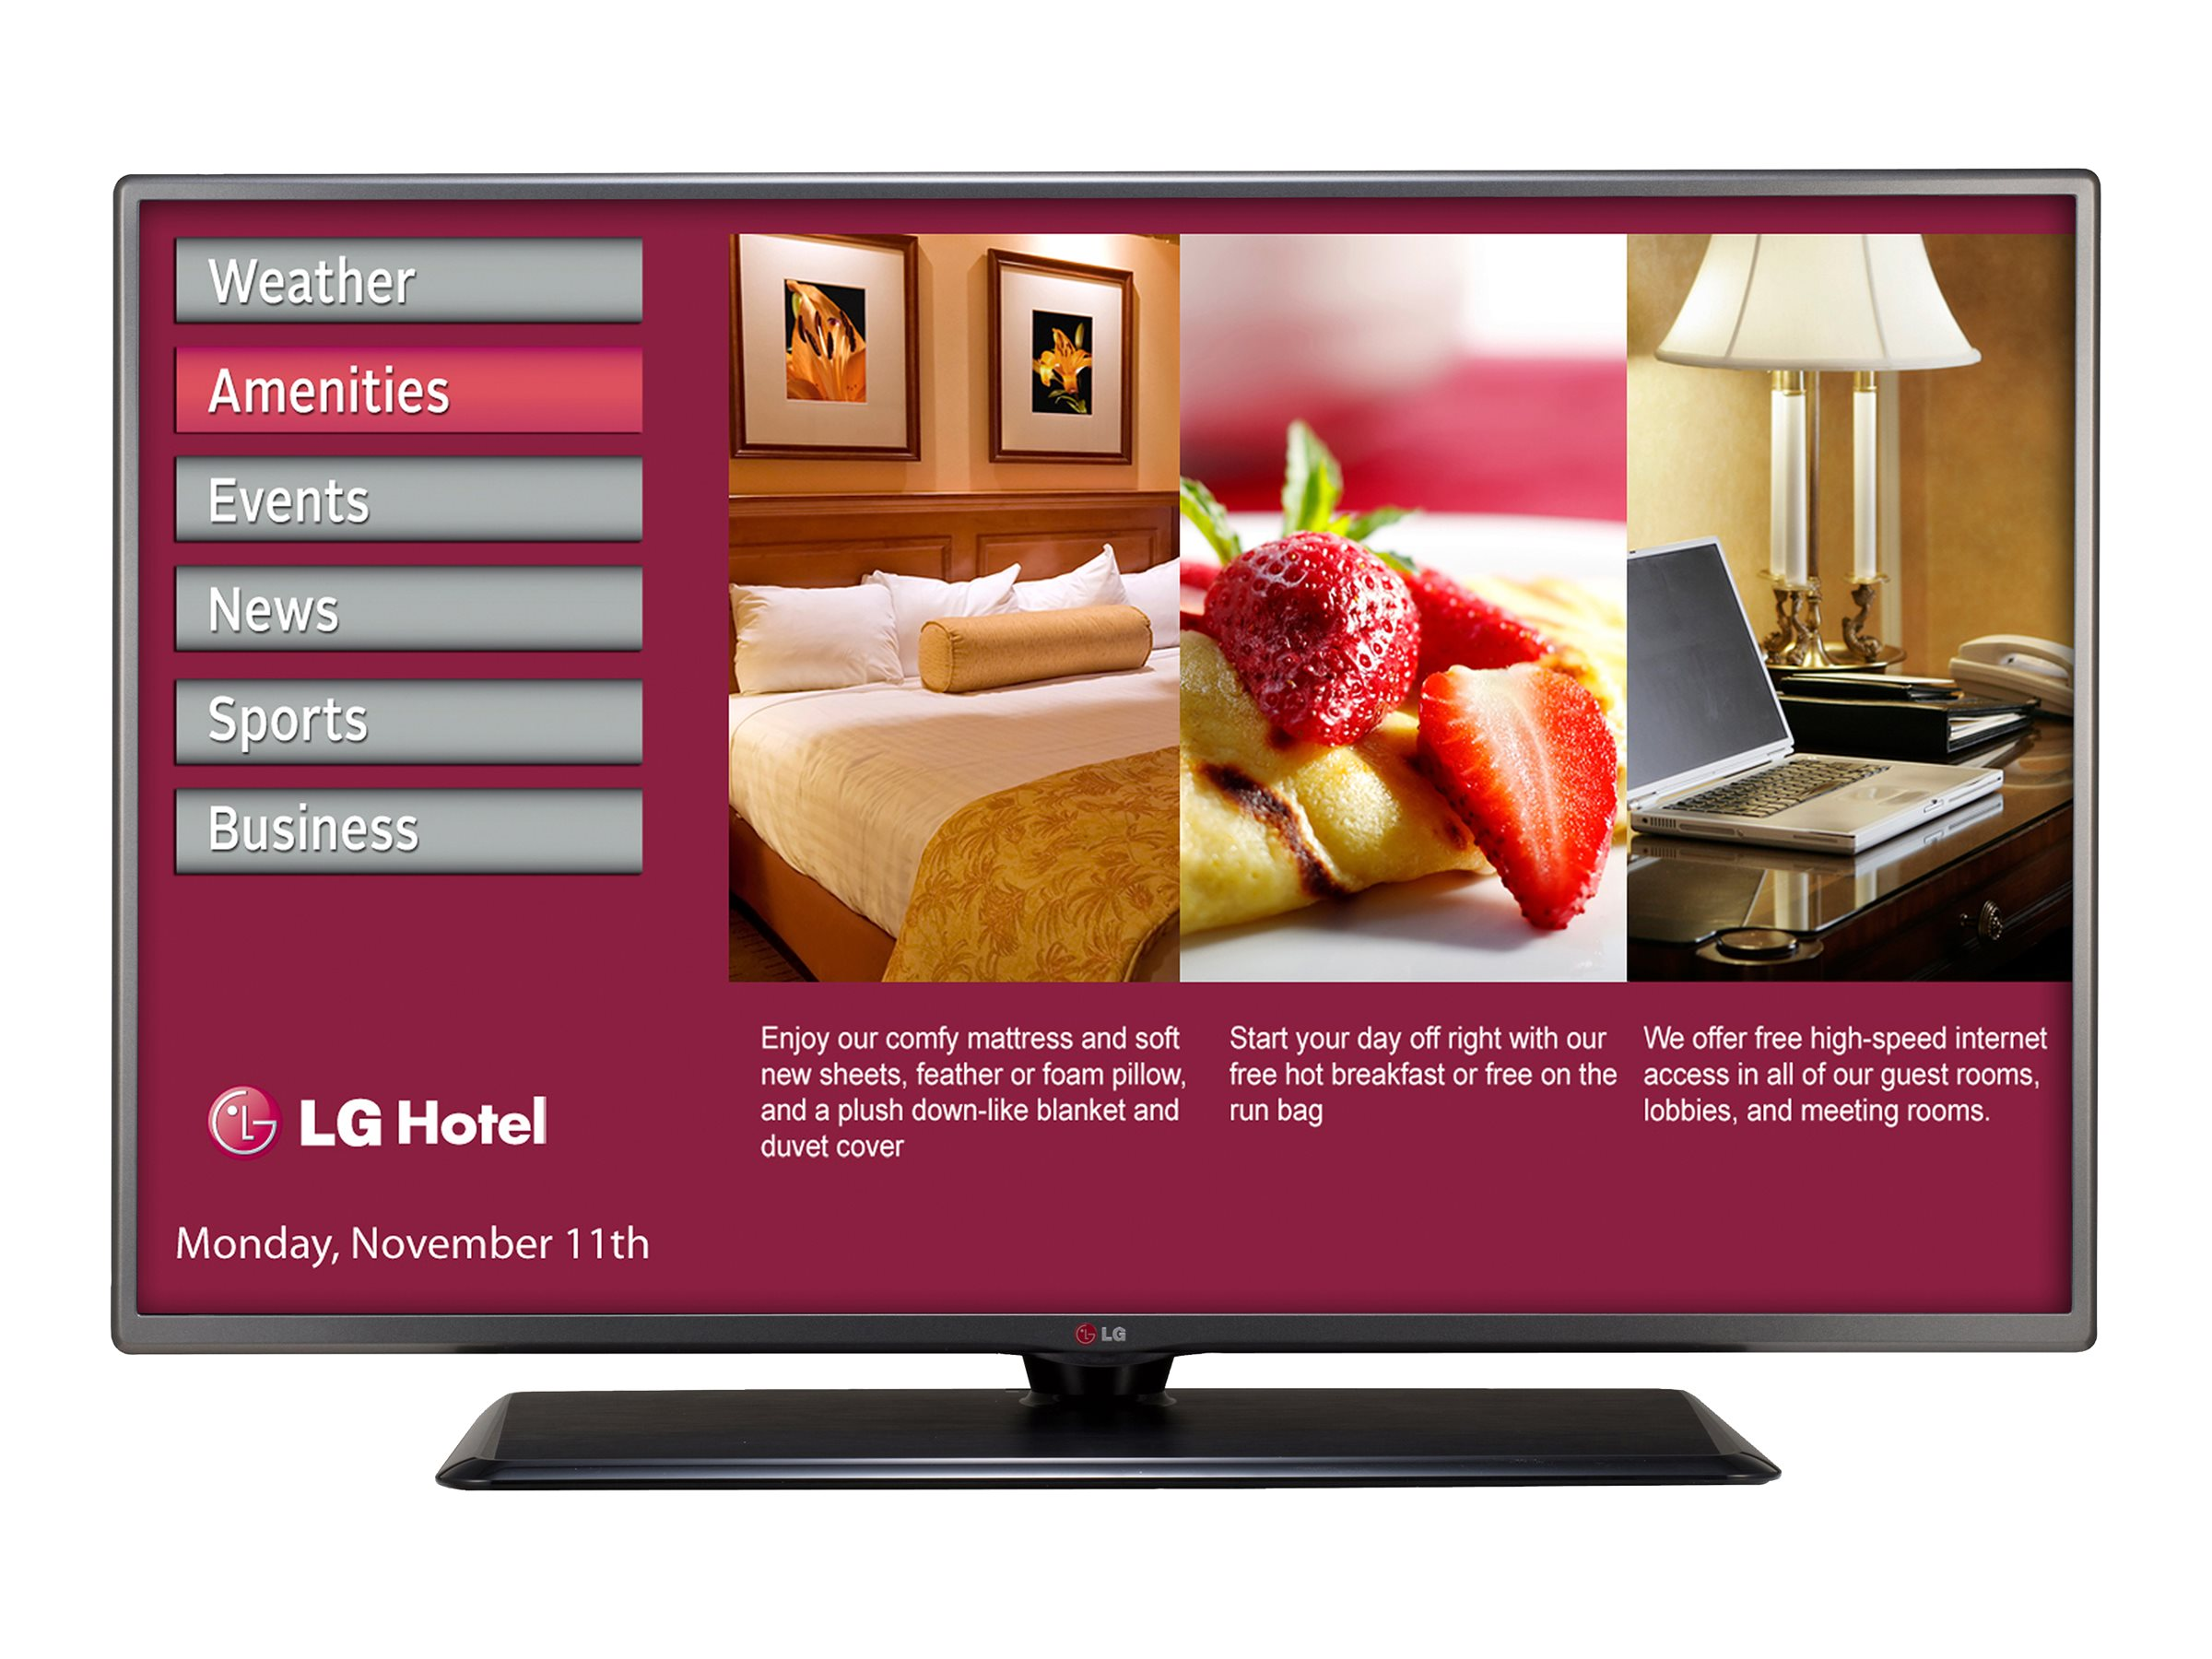 LG 54.6 LY760H Full HD LED-LCD Hospitality TV, Black, 55LY760H, 18770388, Televisions - LED-LCD Commercial